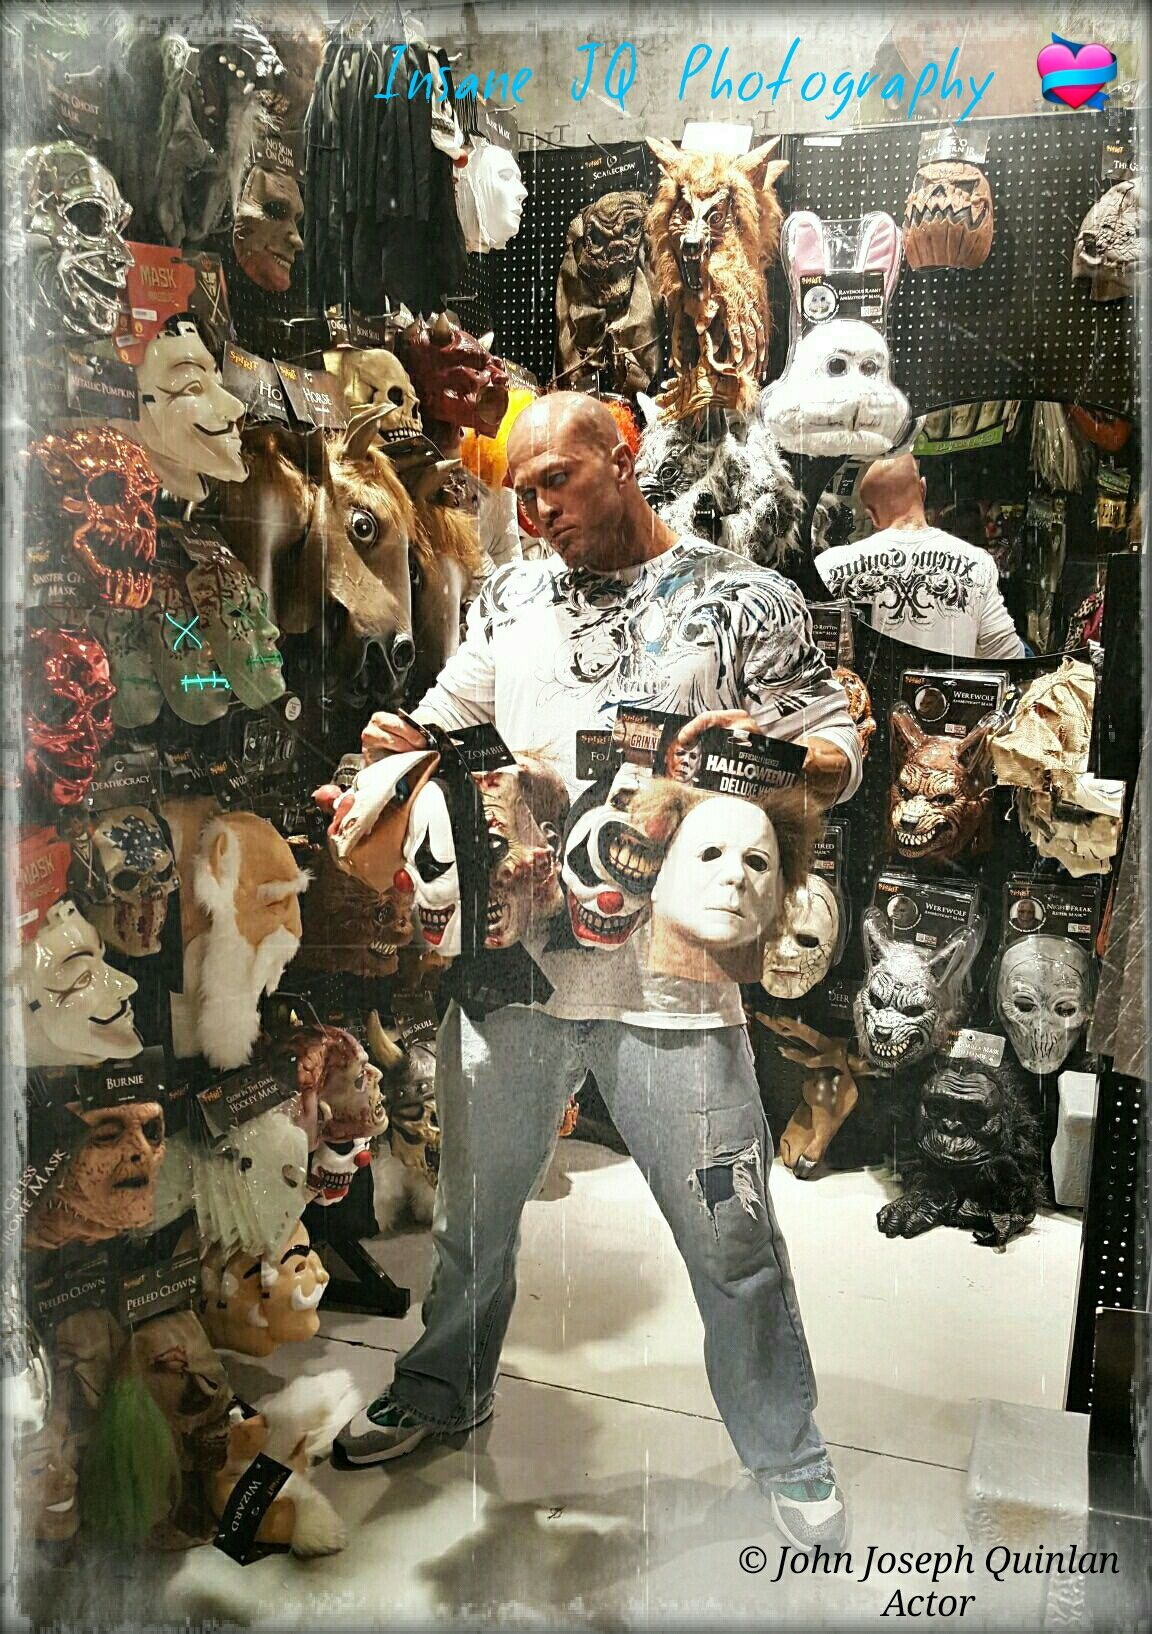 Actor & Model John Joseph Quinlan Michael Myers Halloween Masks 2016 #JohnQuinlan #MichaelMyers #Halloween